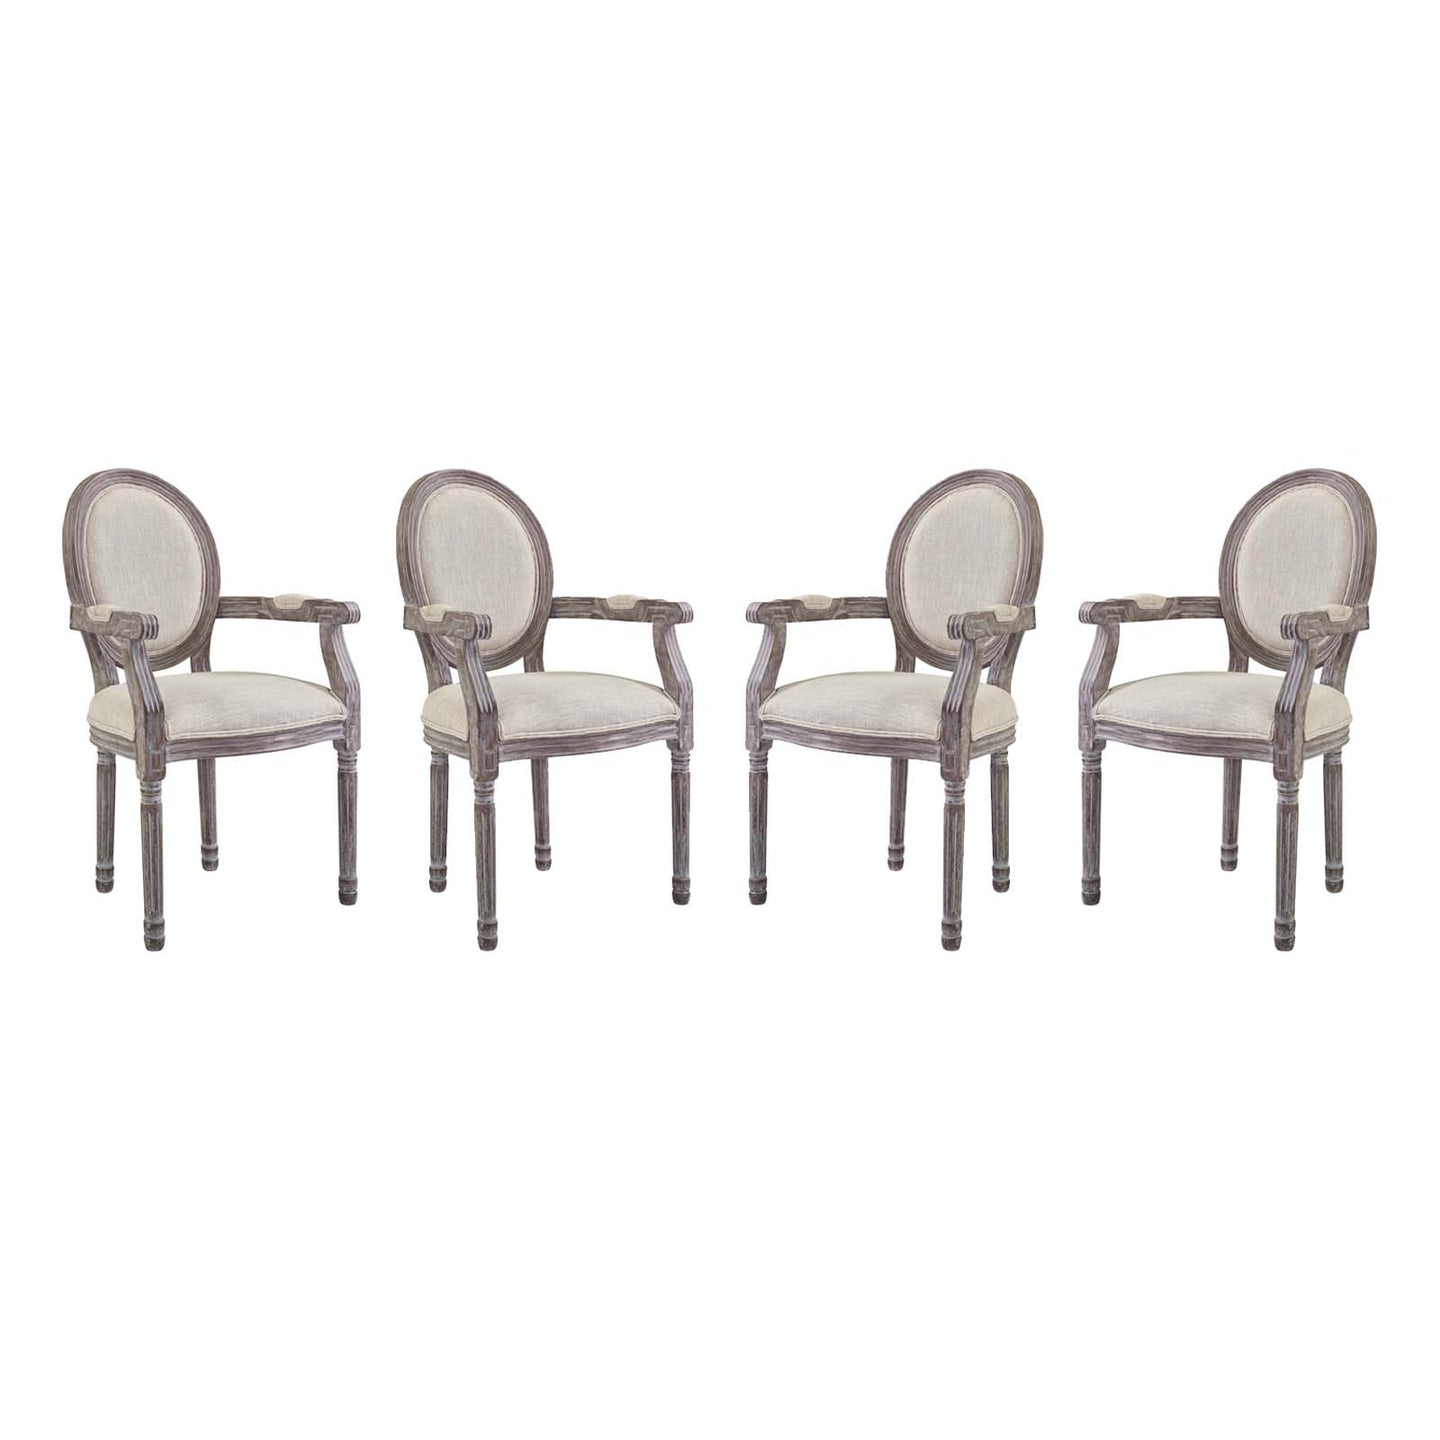 Modway Furniture Modern Emanate Dining Armchair Upholstered Fabric Set of 4 - EEI-3466